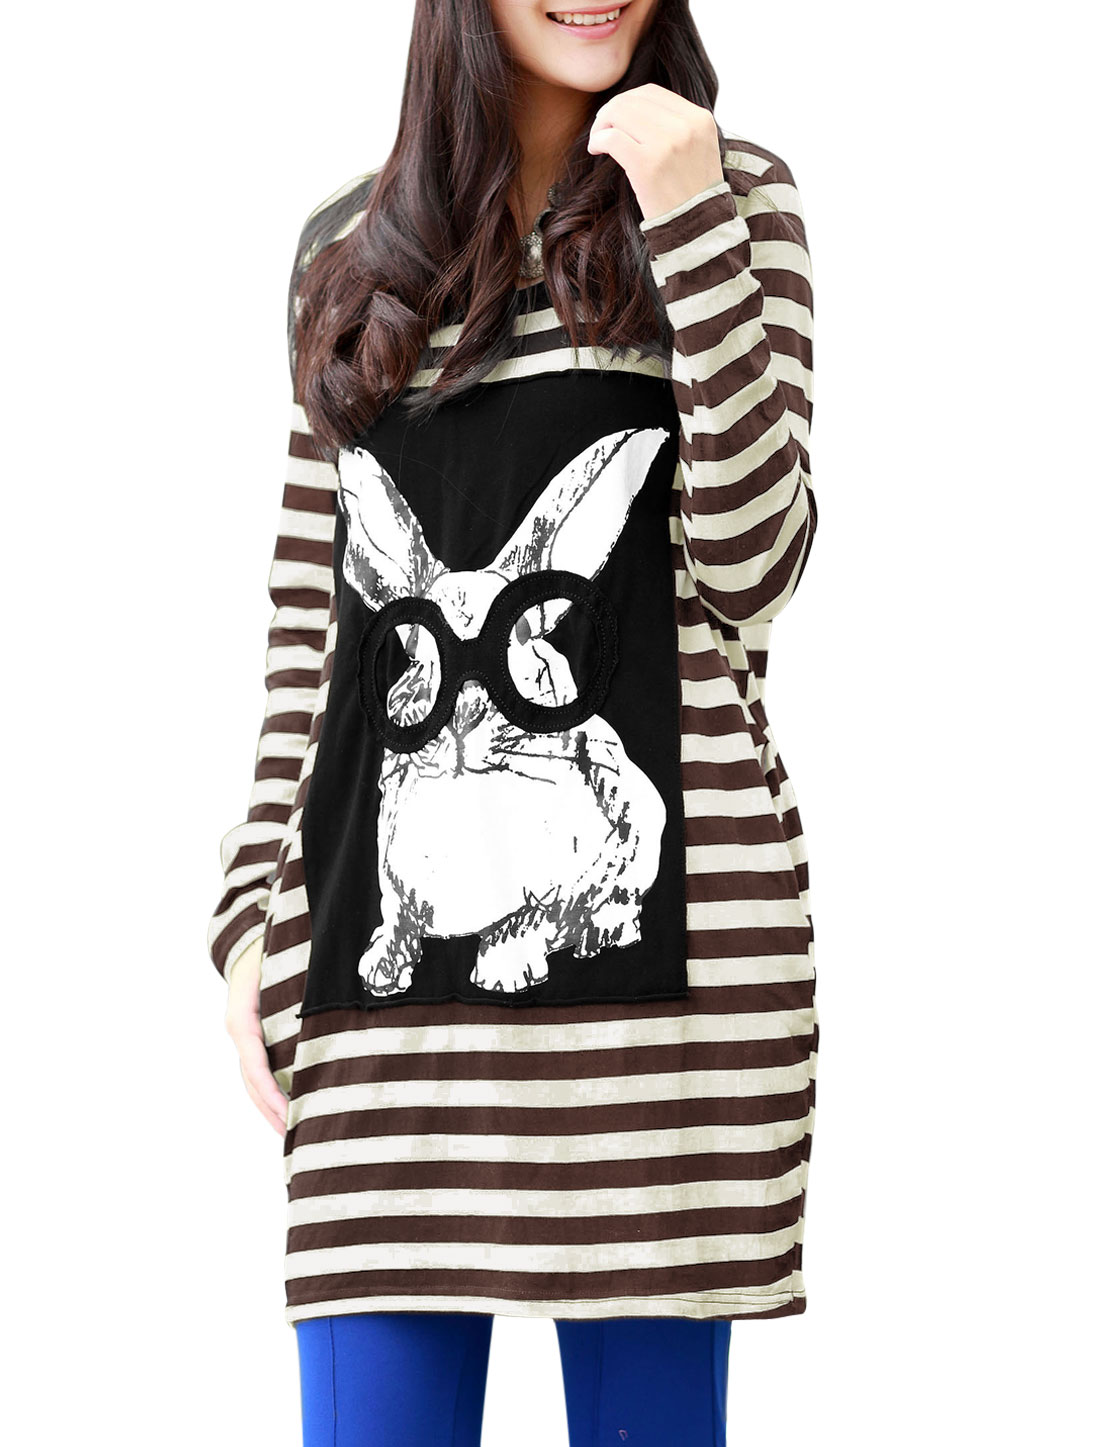 Motherhood Round Neck Stripes Rabbit Printed Stretchy T-Shirt Brown Beige L